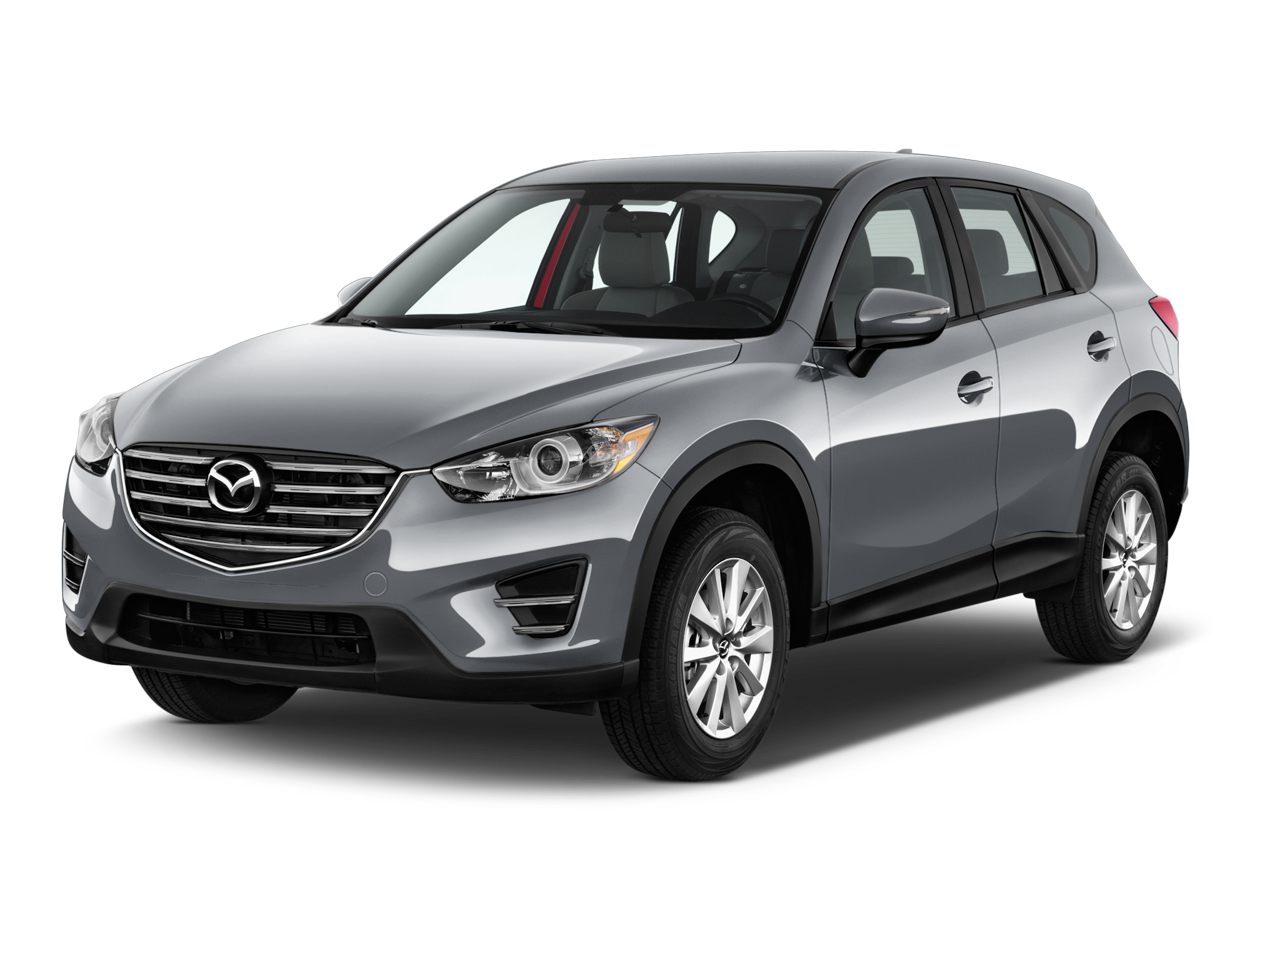 new 2016 mazda cx 5 sport near webster tx mazda of clear lake. Black Bedroom Furniture Sets. Home Design Ideas